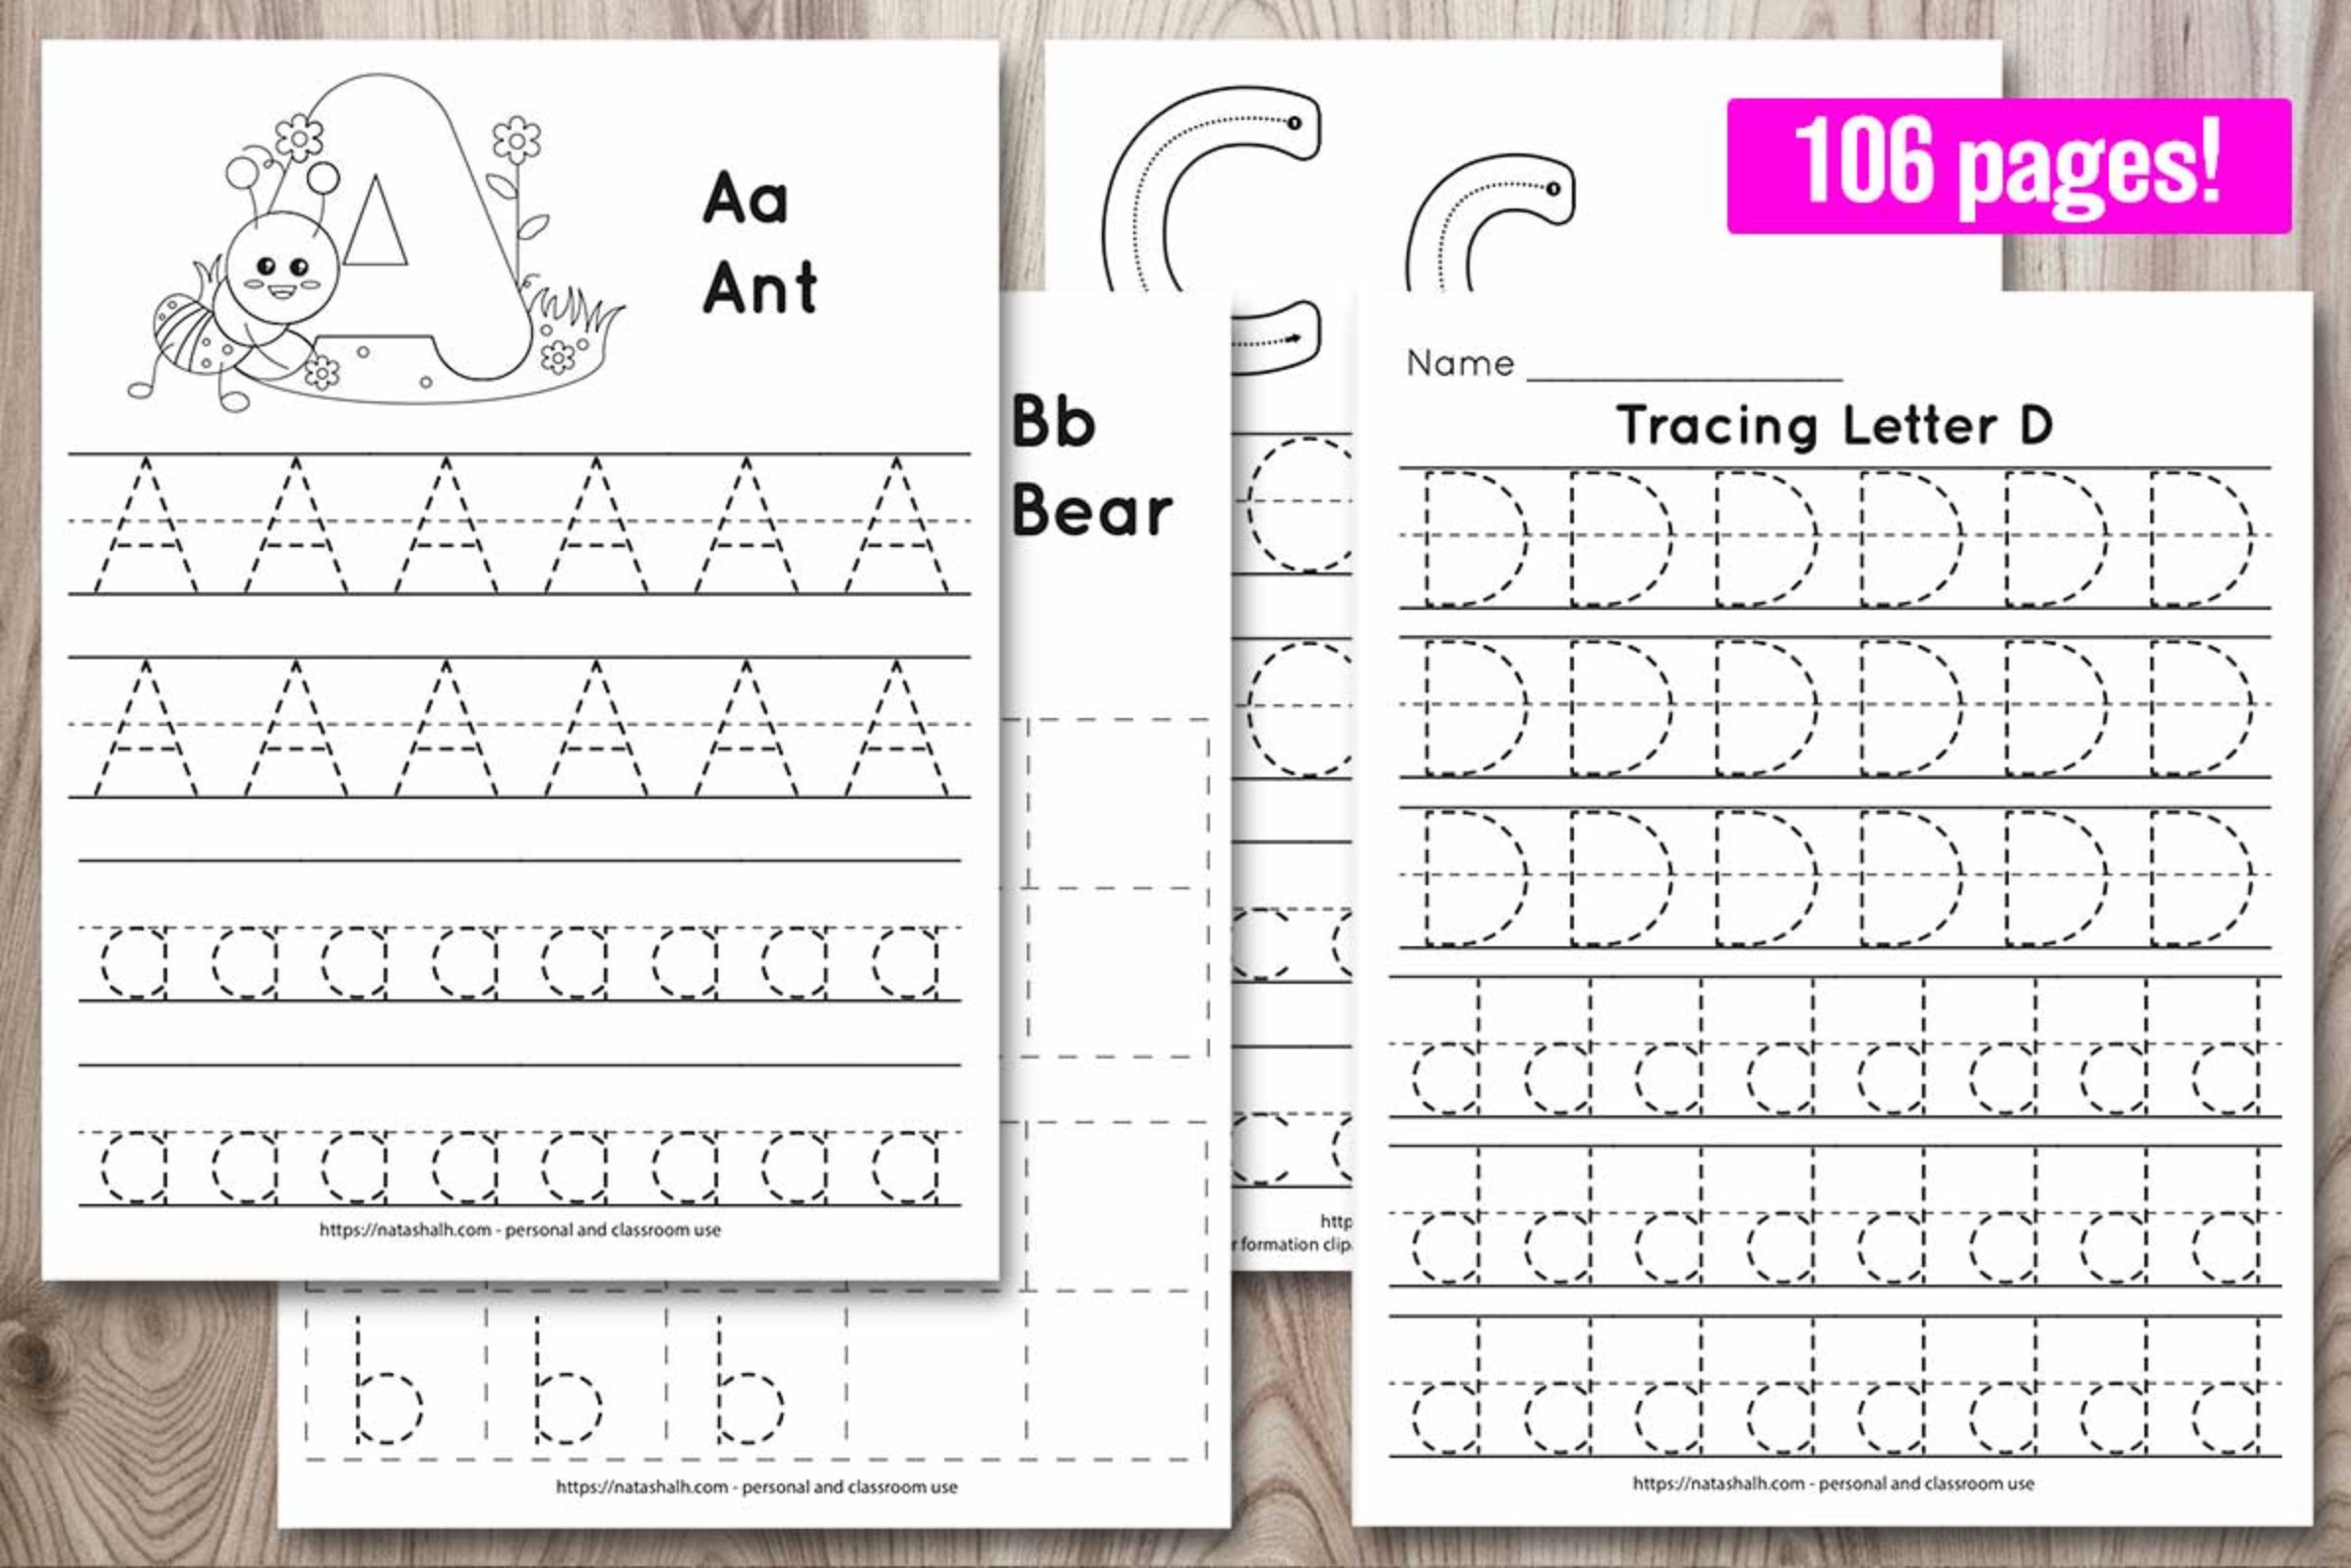 Alphabet Tracing Pages - Full Alphabet with Bonus Writing Practice Pages